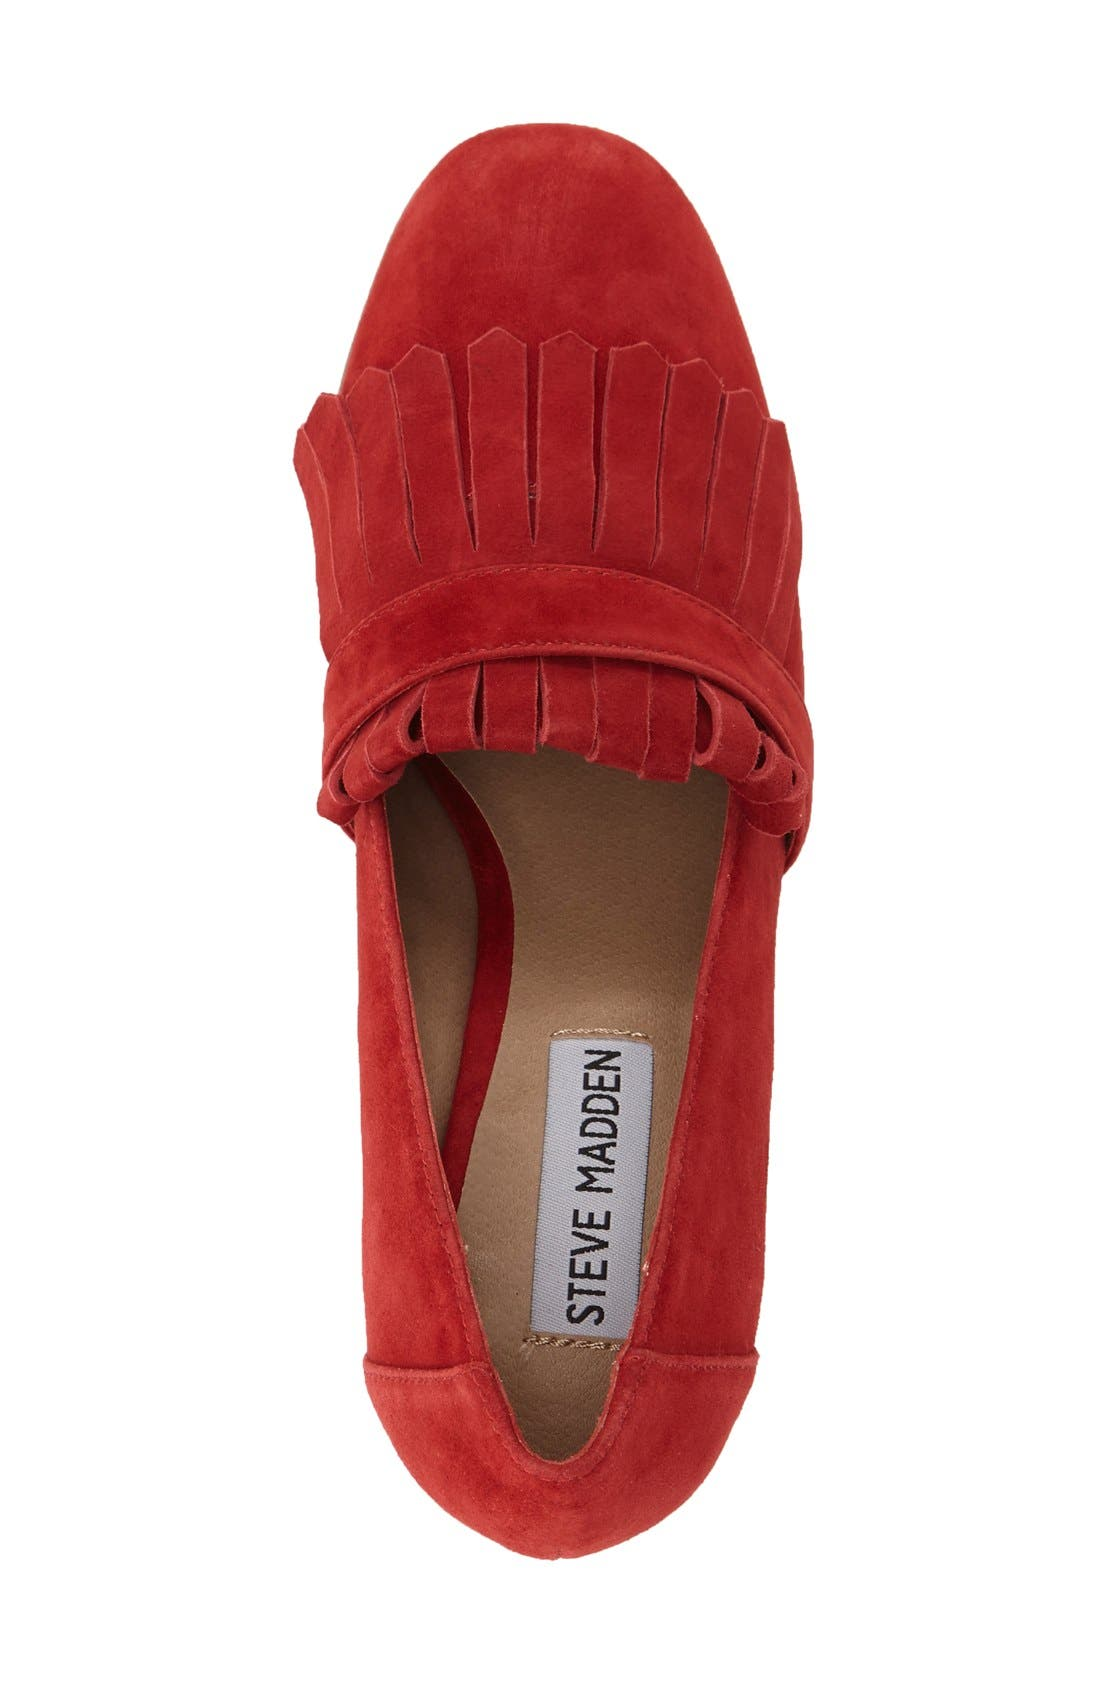 'Kate' Loafer Pumps,                             Alternate thumbnail 3, color,                             Red Suede